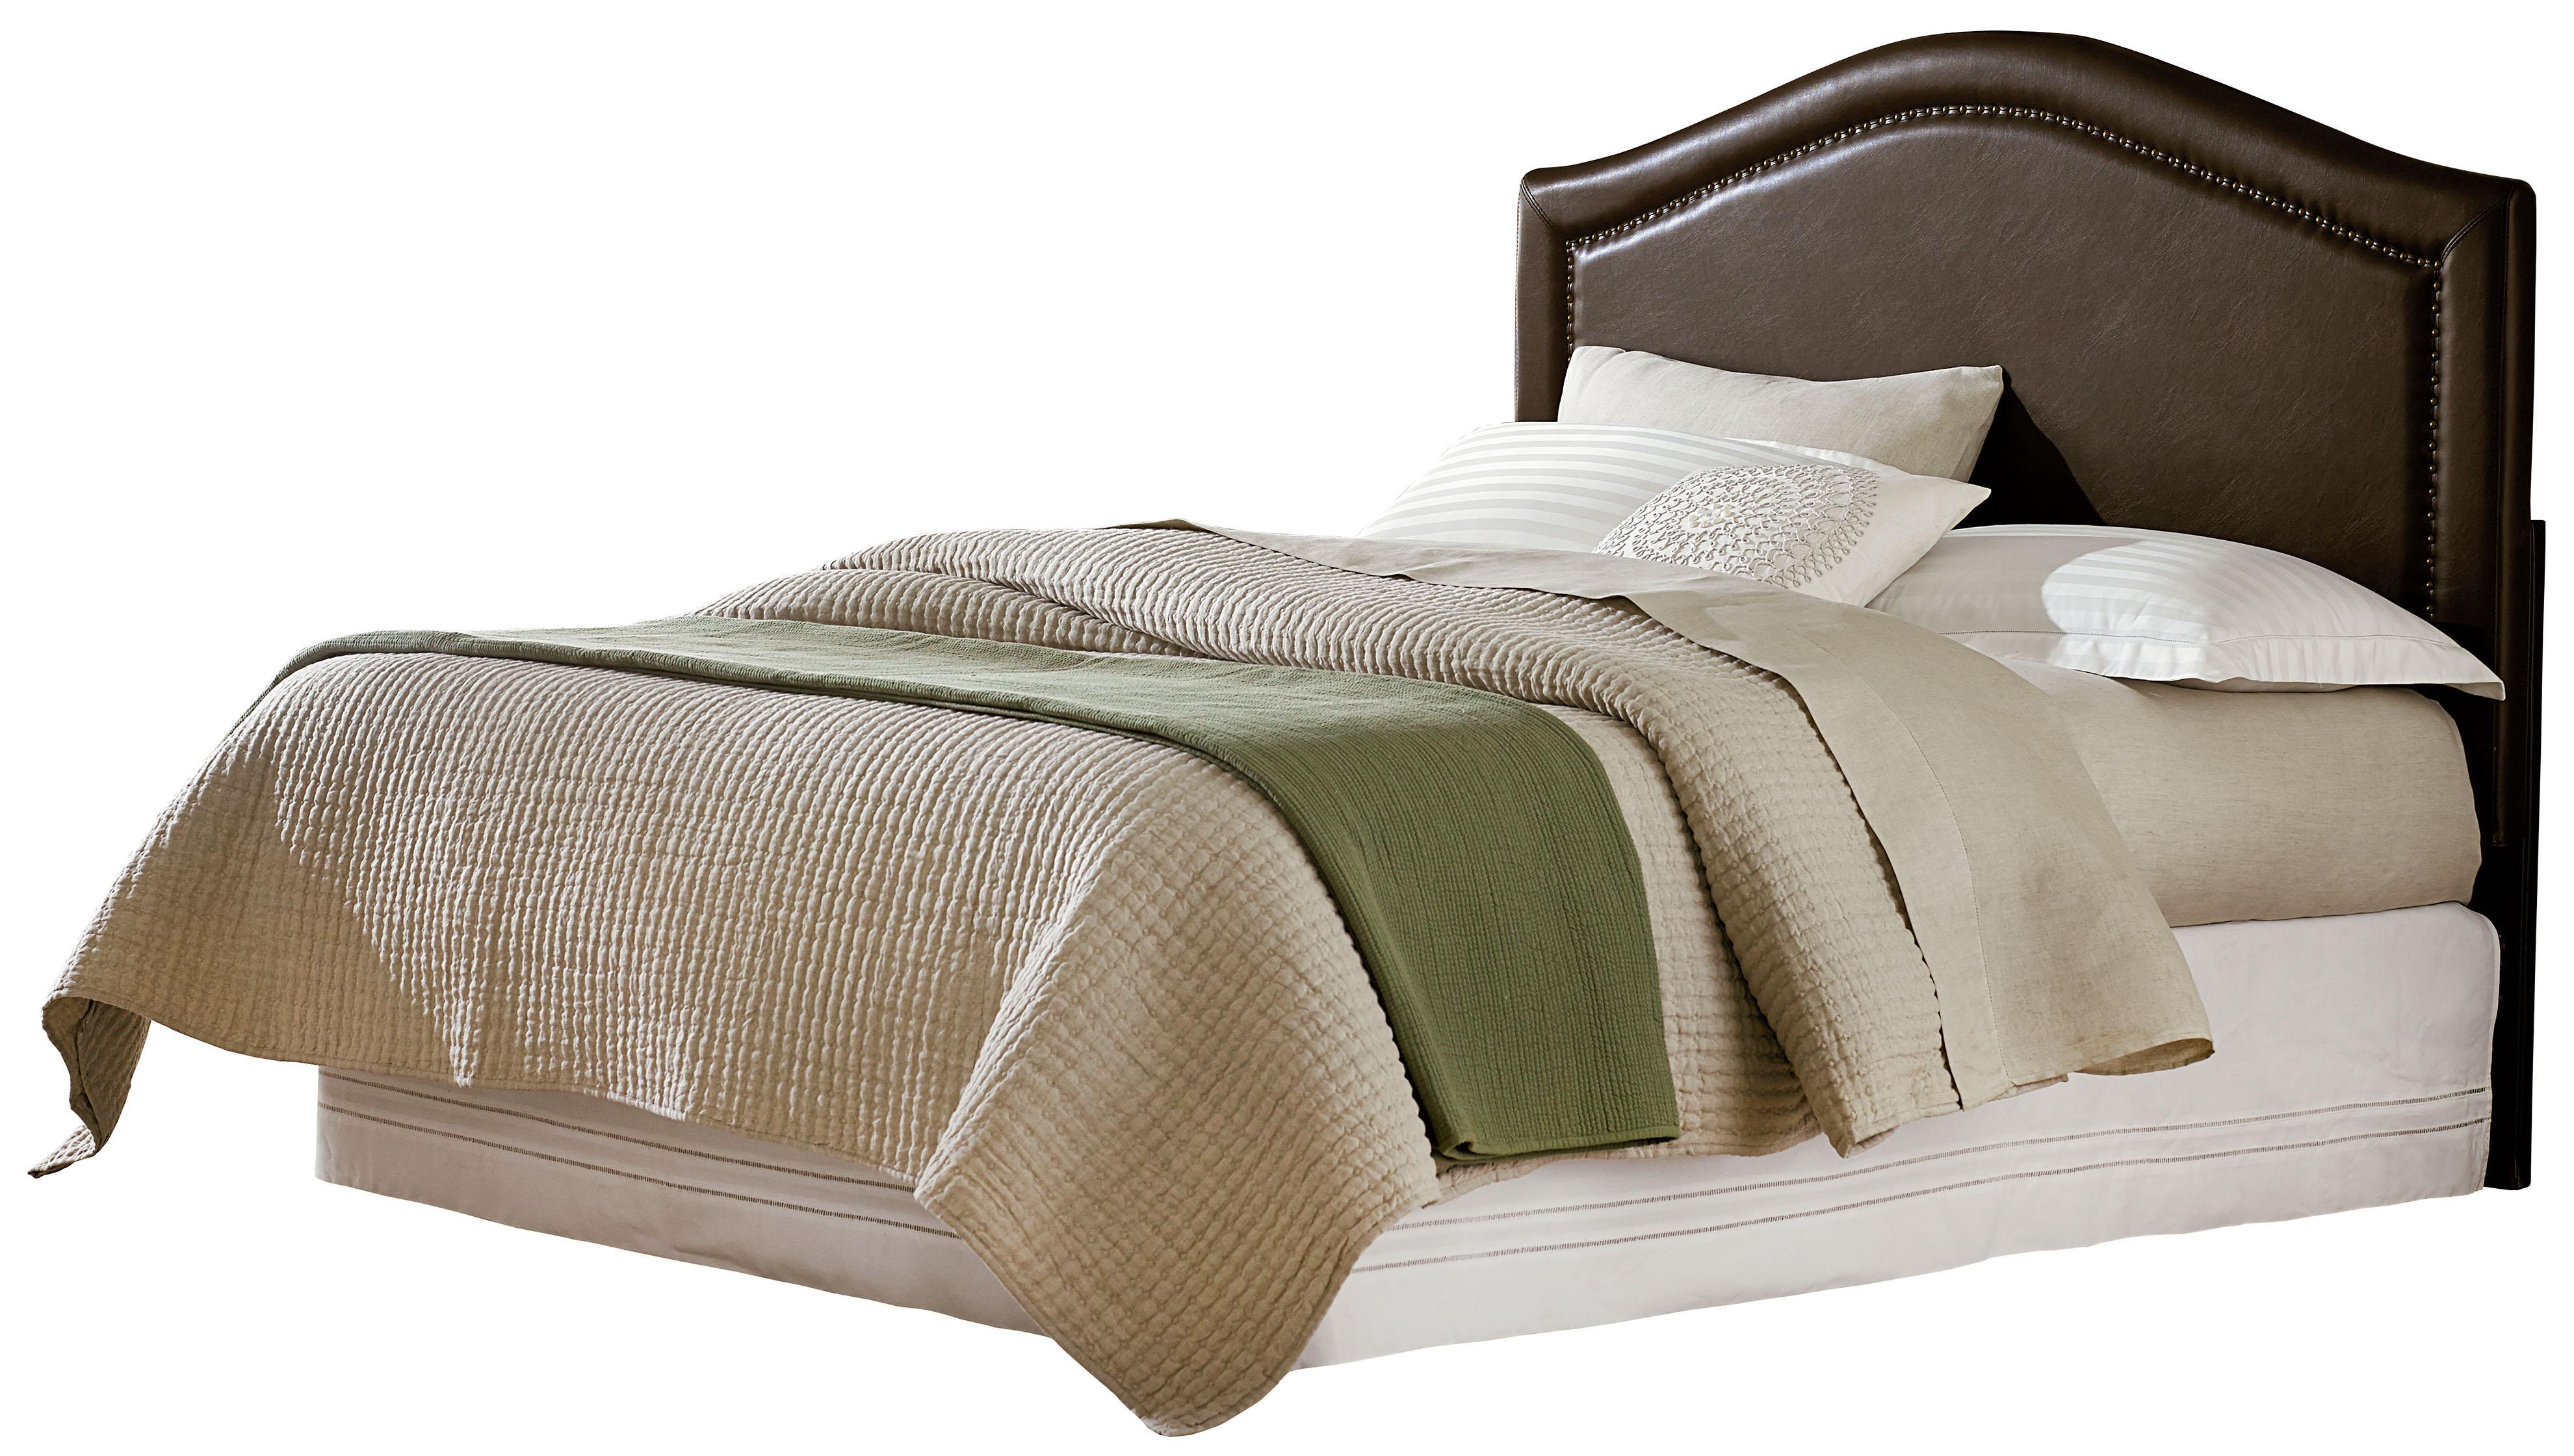 of by modern frames with headboard round frame completed curved leather bench circle idea grey white our bedroom for bed